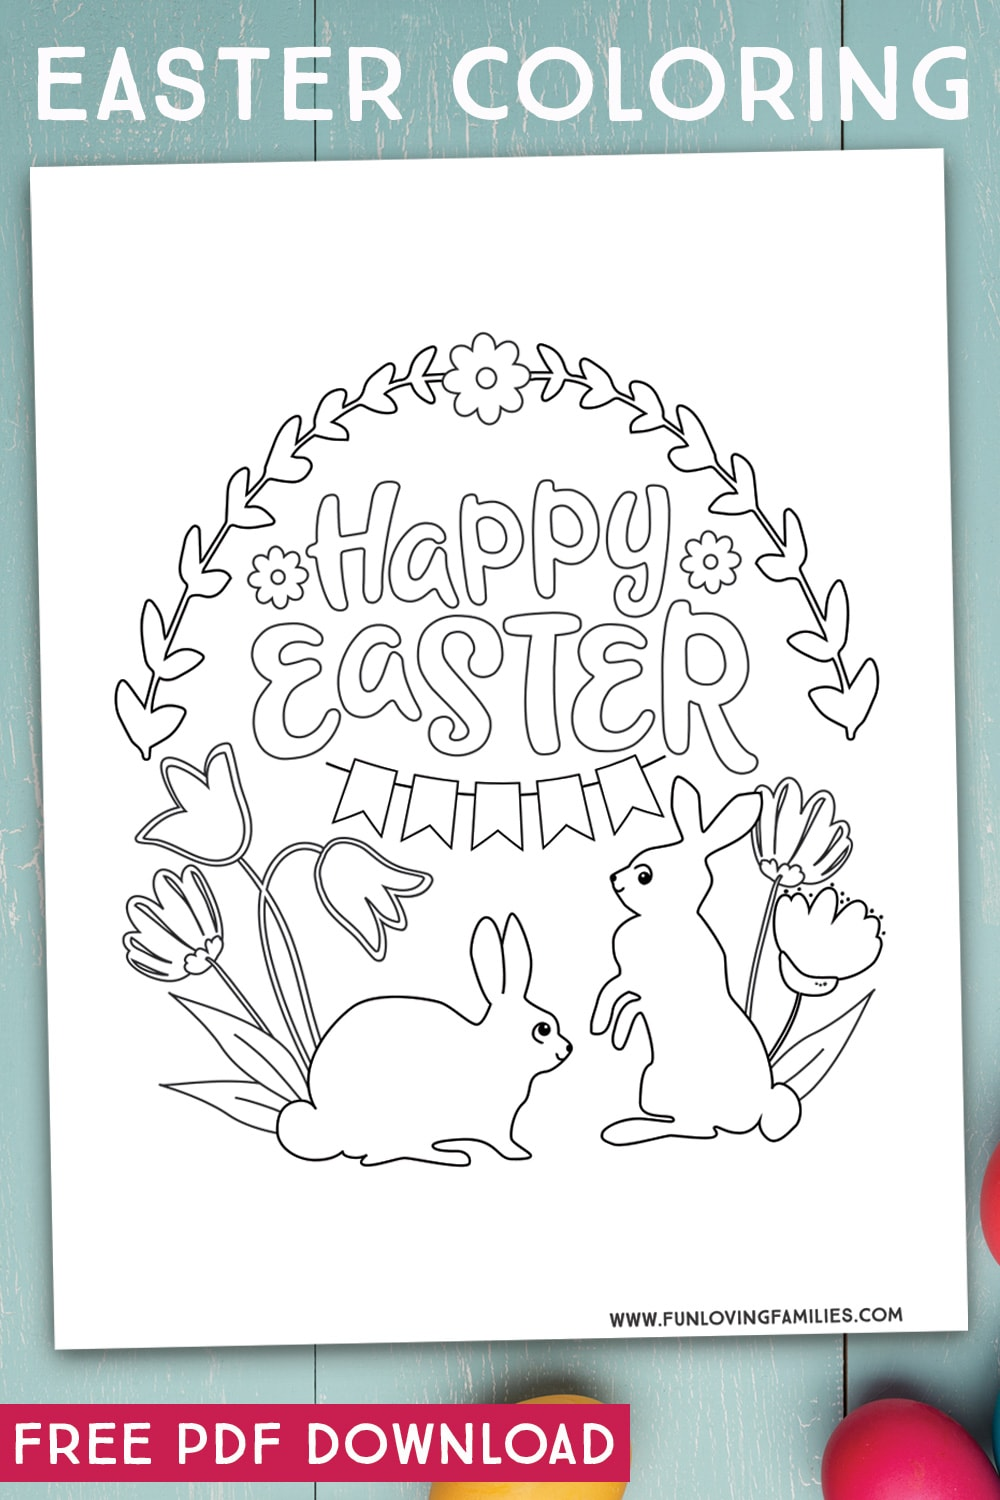 83 Best Easter Coloring Pages | Free Printable PDFs to Download | 1500x1000